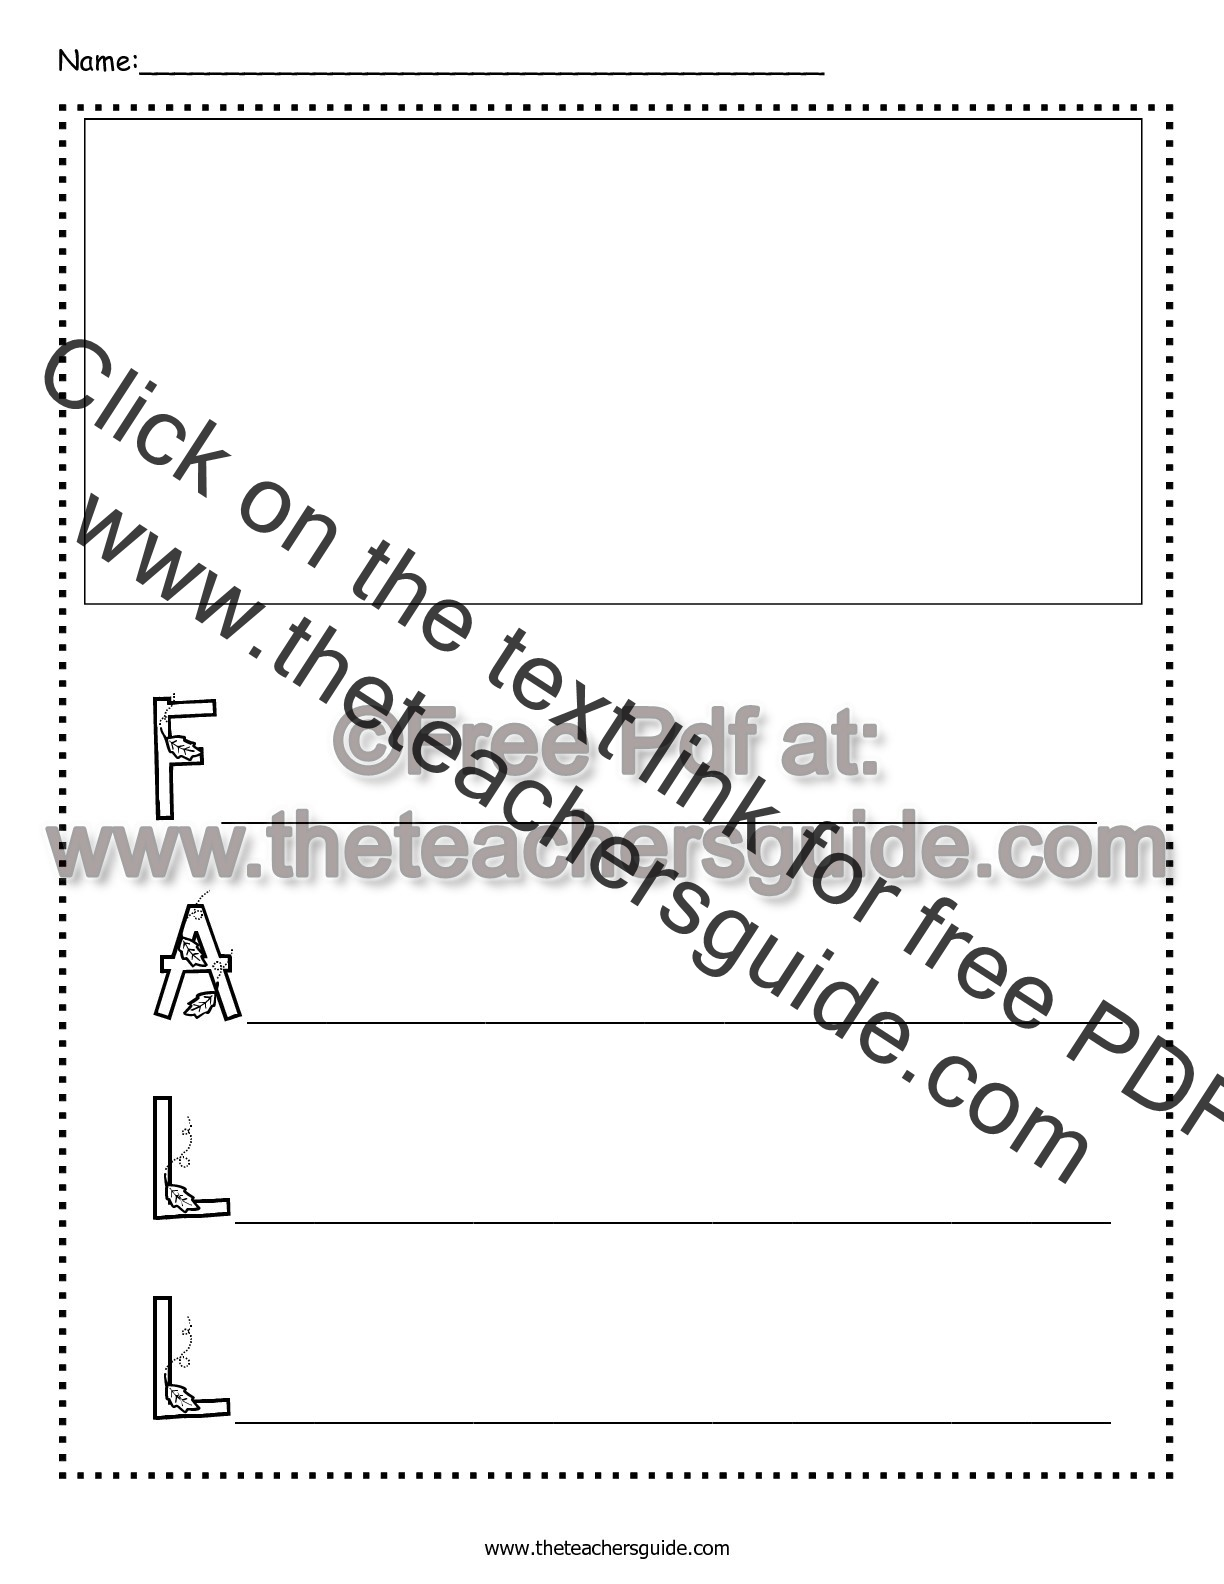 worksheet Poetry Worksheets High School autumn worksheets and printouts from the teachers guide fall acrostic poem form